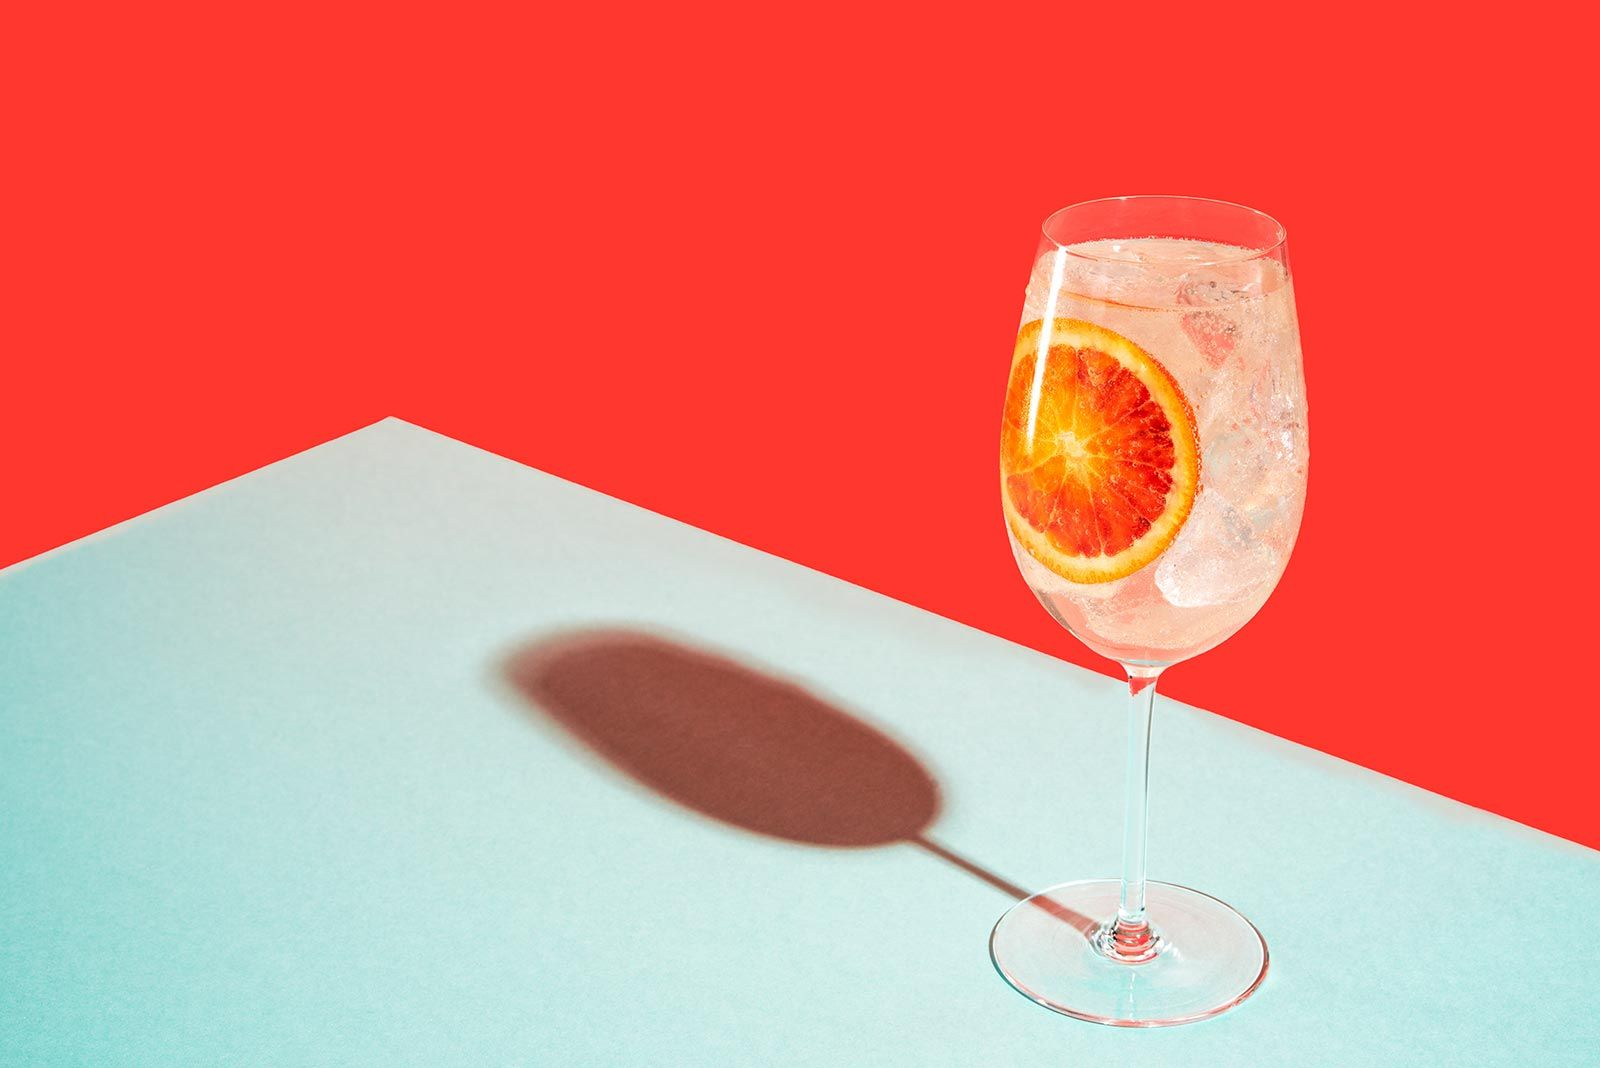 Cocktail Still Life Davide Lucia Food Photographer Fuorizona Food Agency Photographing Food Cocktail Photography Drinks